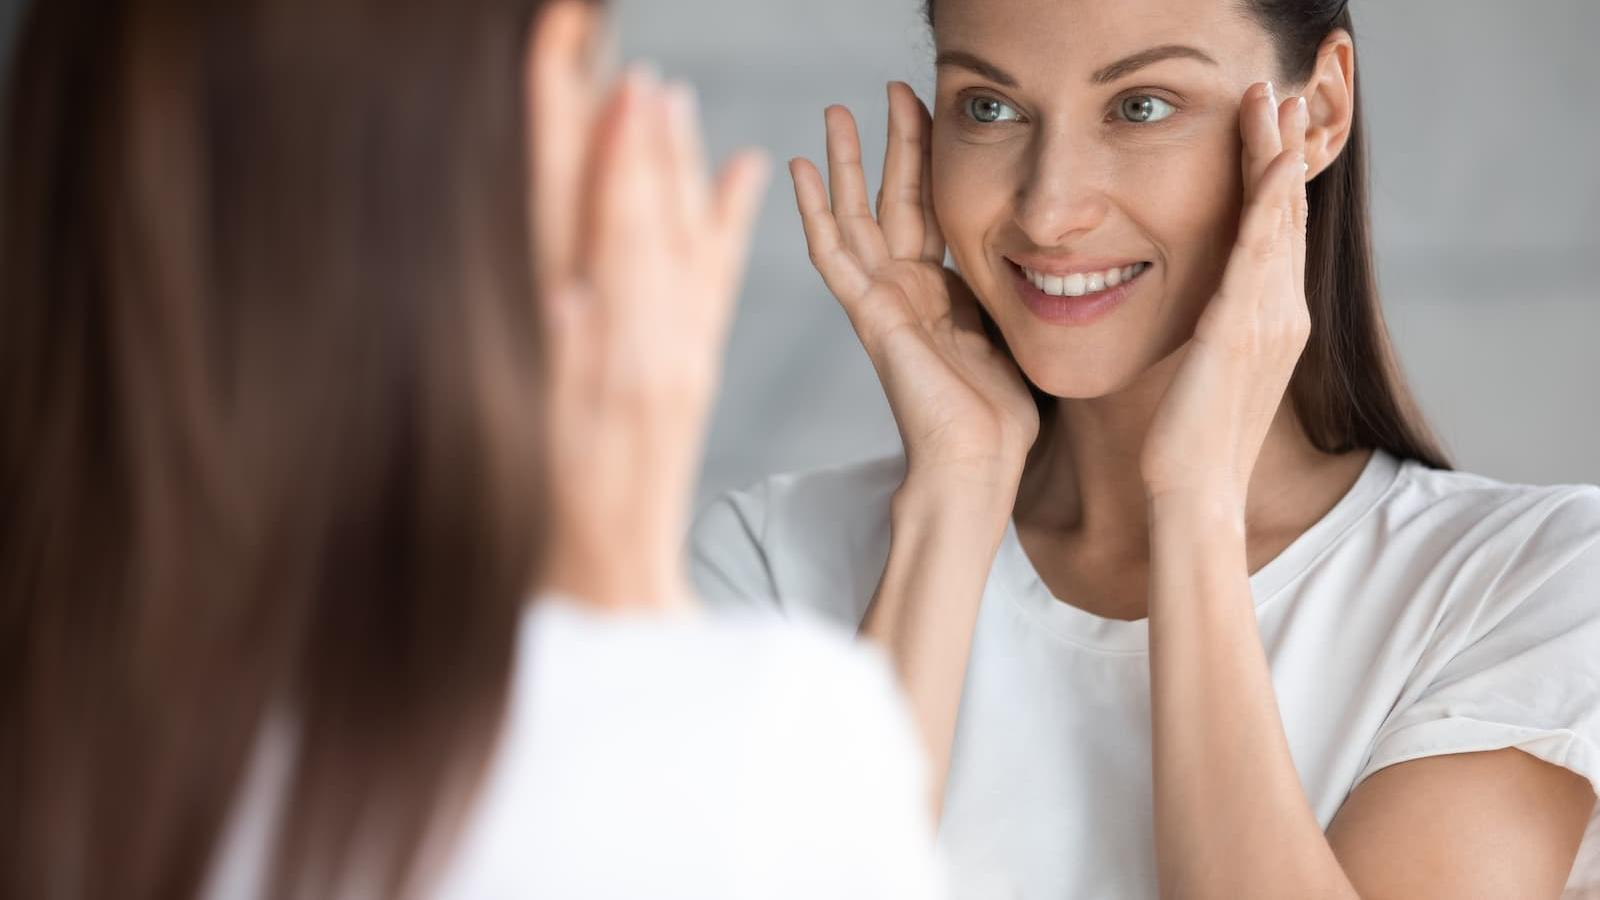 Some important tips for healthier skin